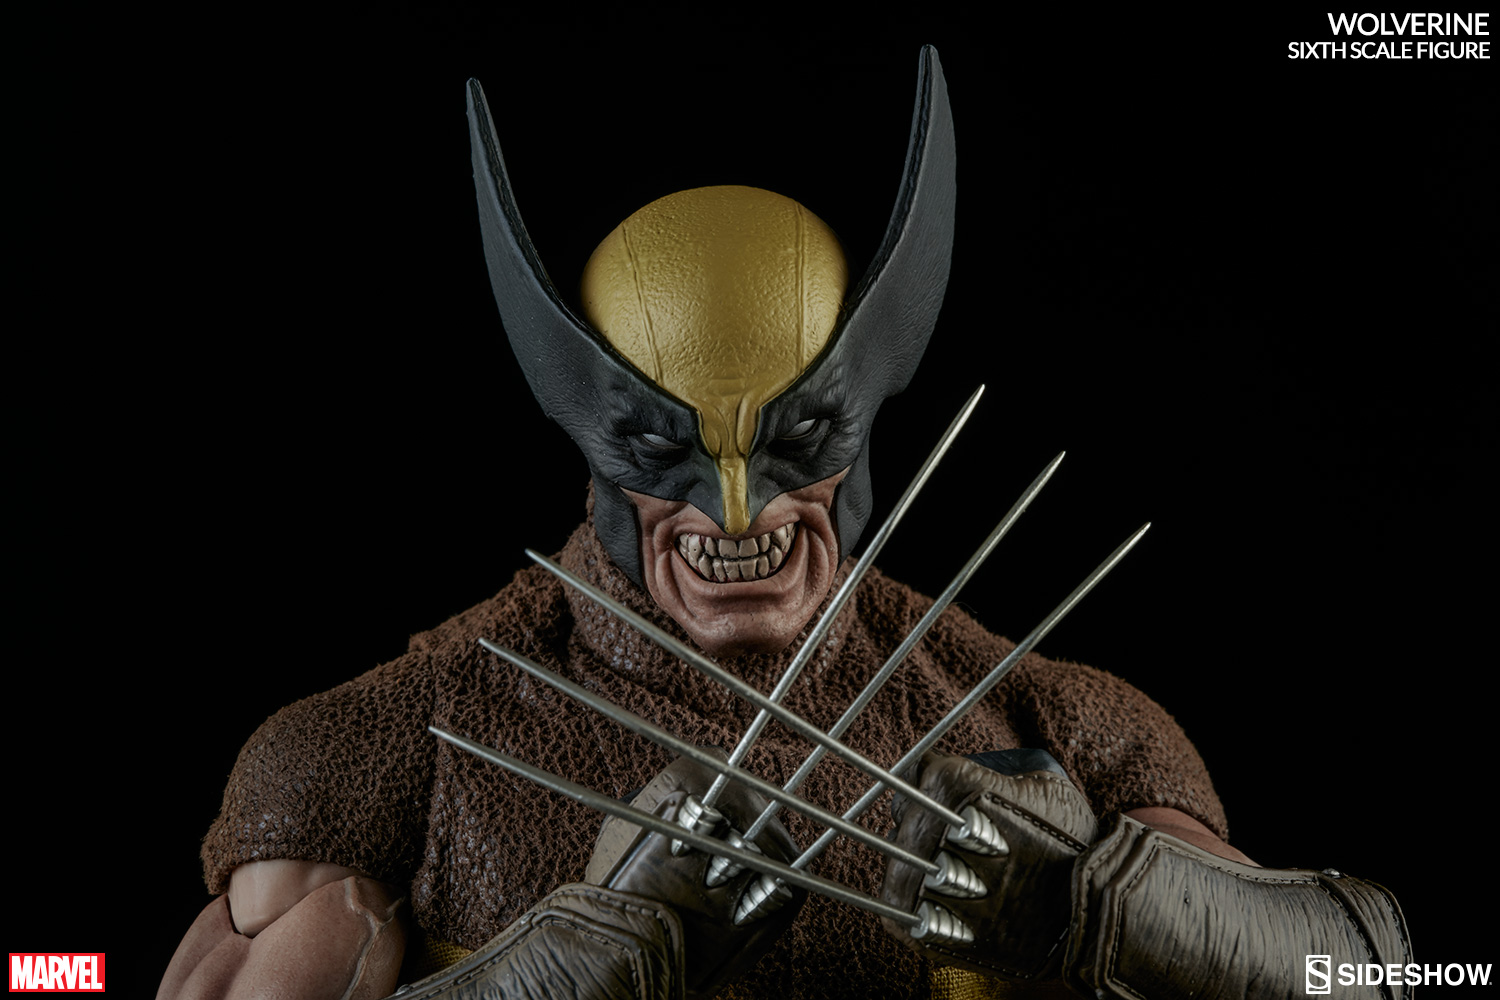 Marvel wolverine sixth scale figure by sideshow collectibles wolverine sixth scale figure wolverine sixth scale figure voltagebd Images